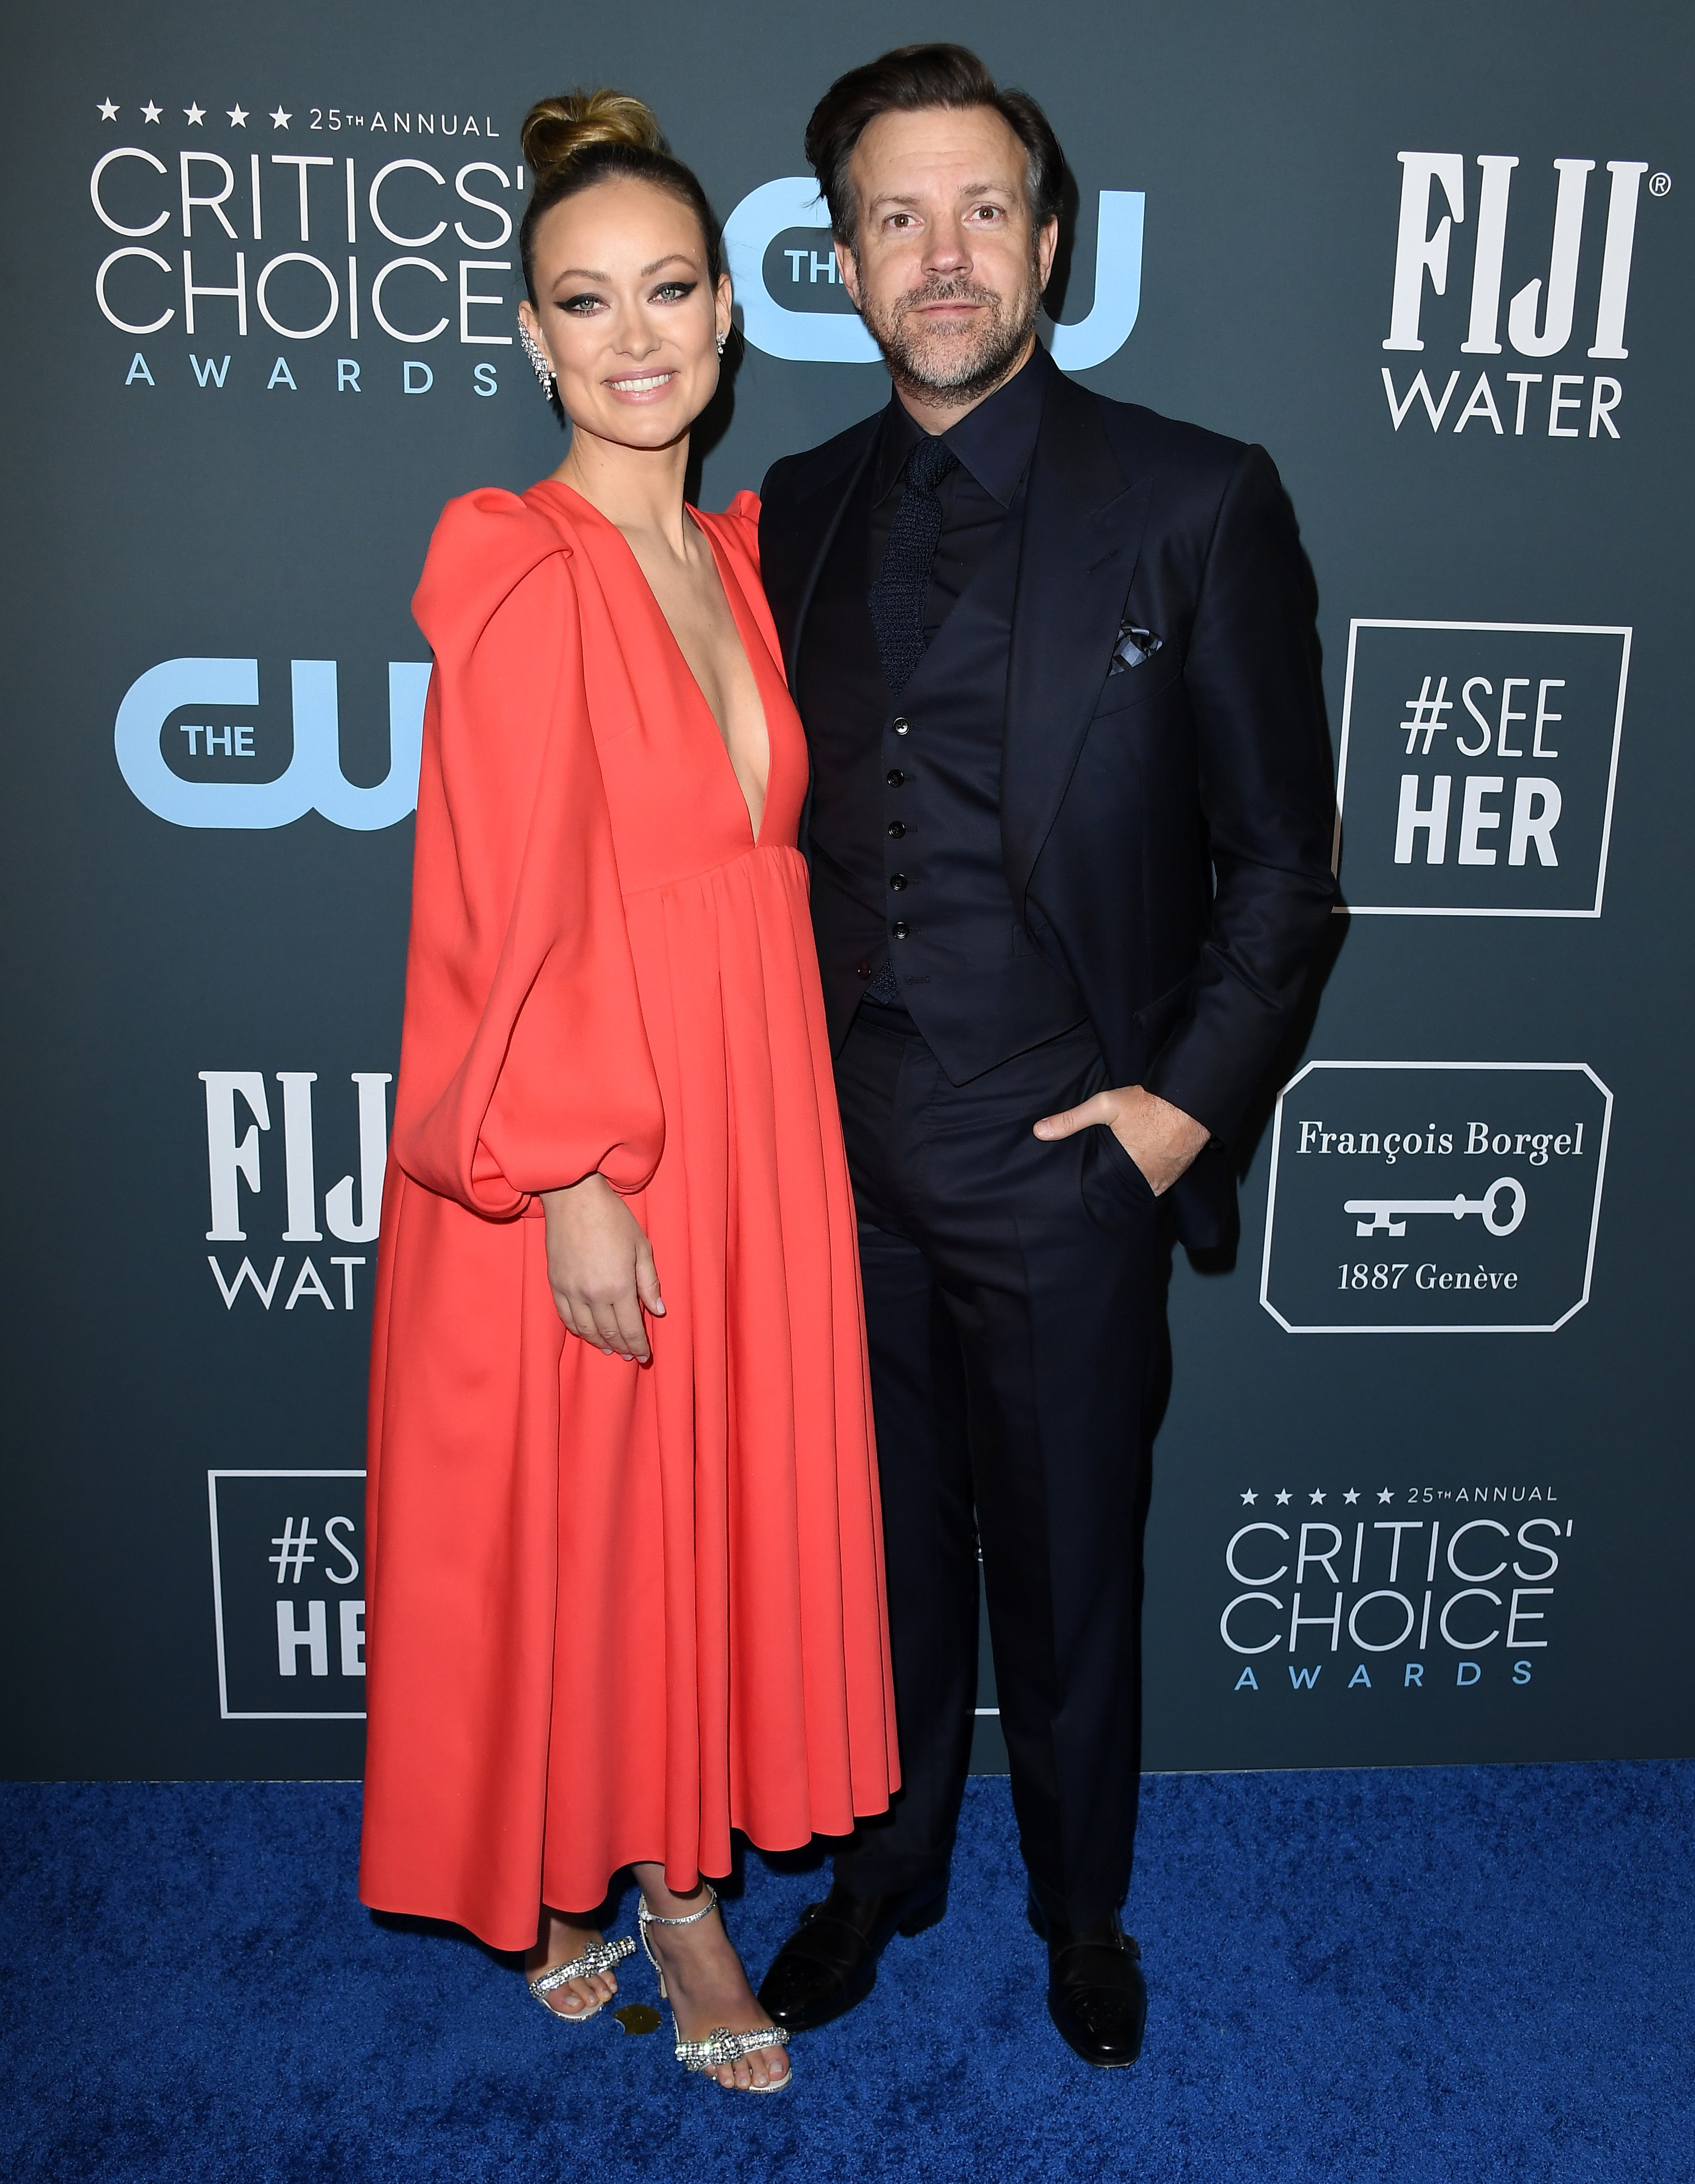 Olivia Wilde and Jason Sudeikis during happier times. The couple called off their engagement in September, 2020. | Photo: Getty Images.